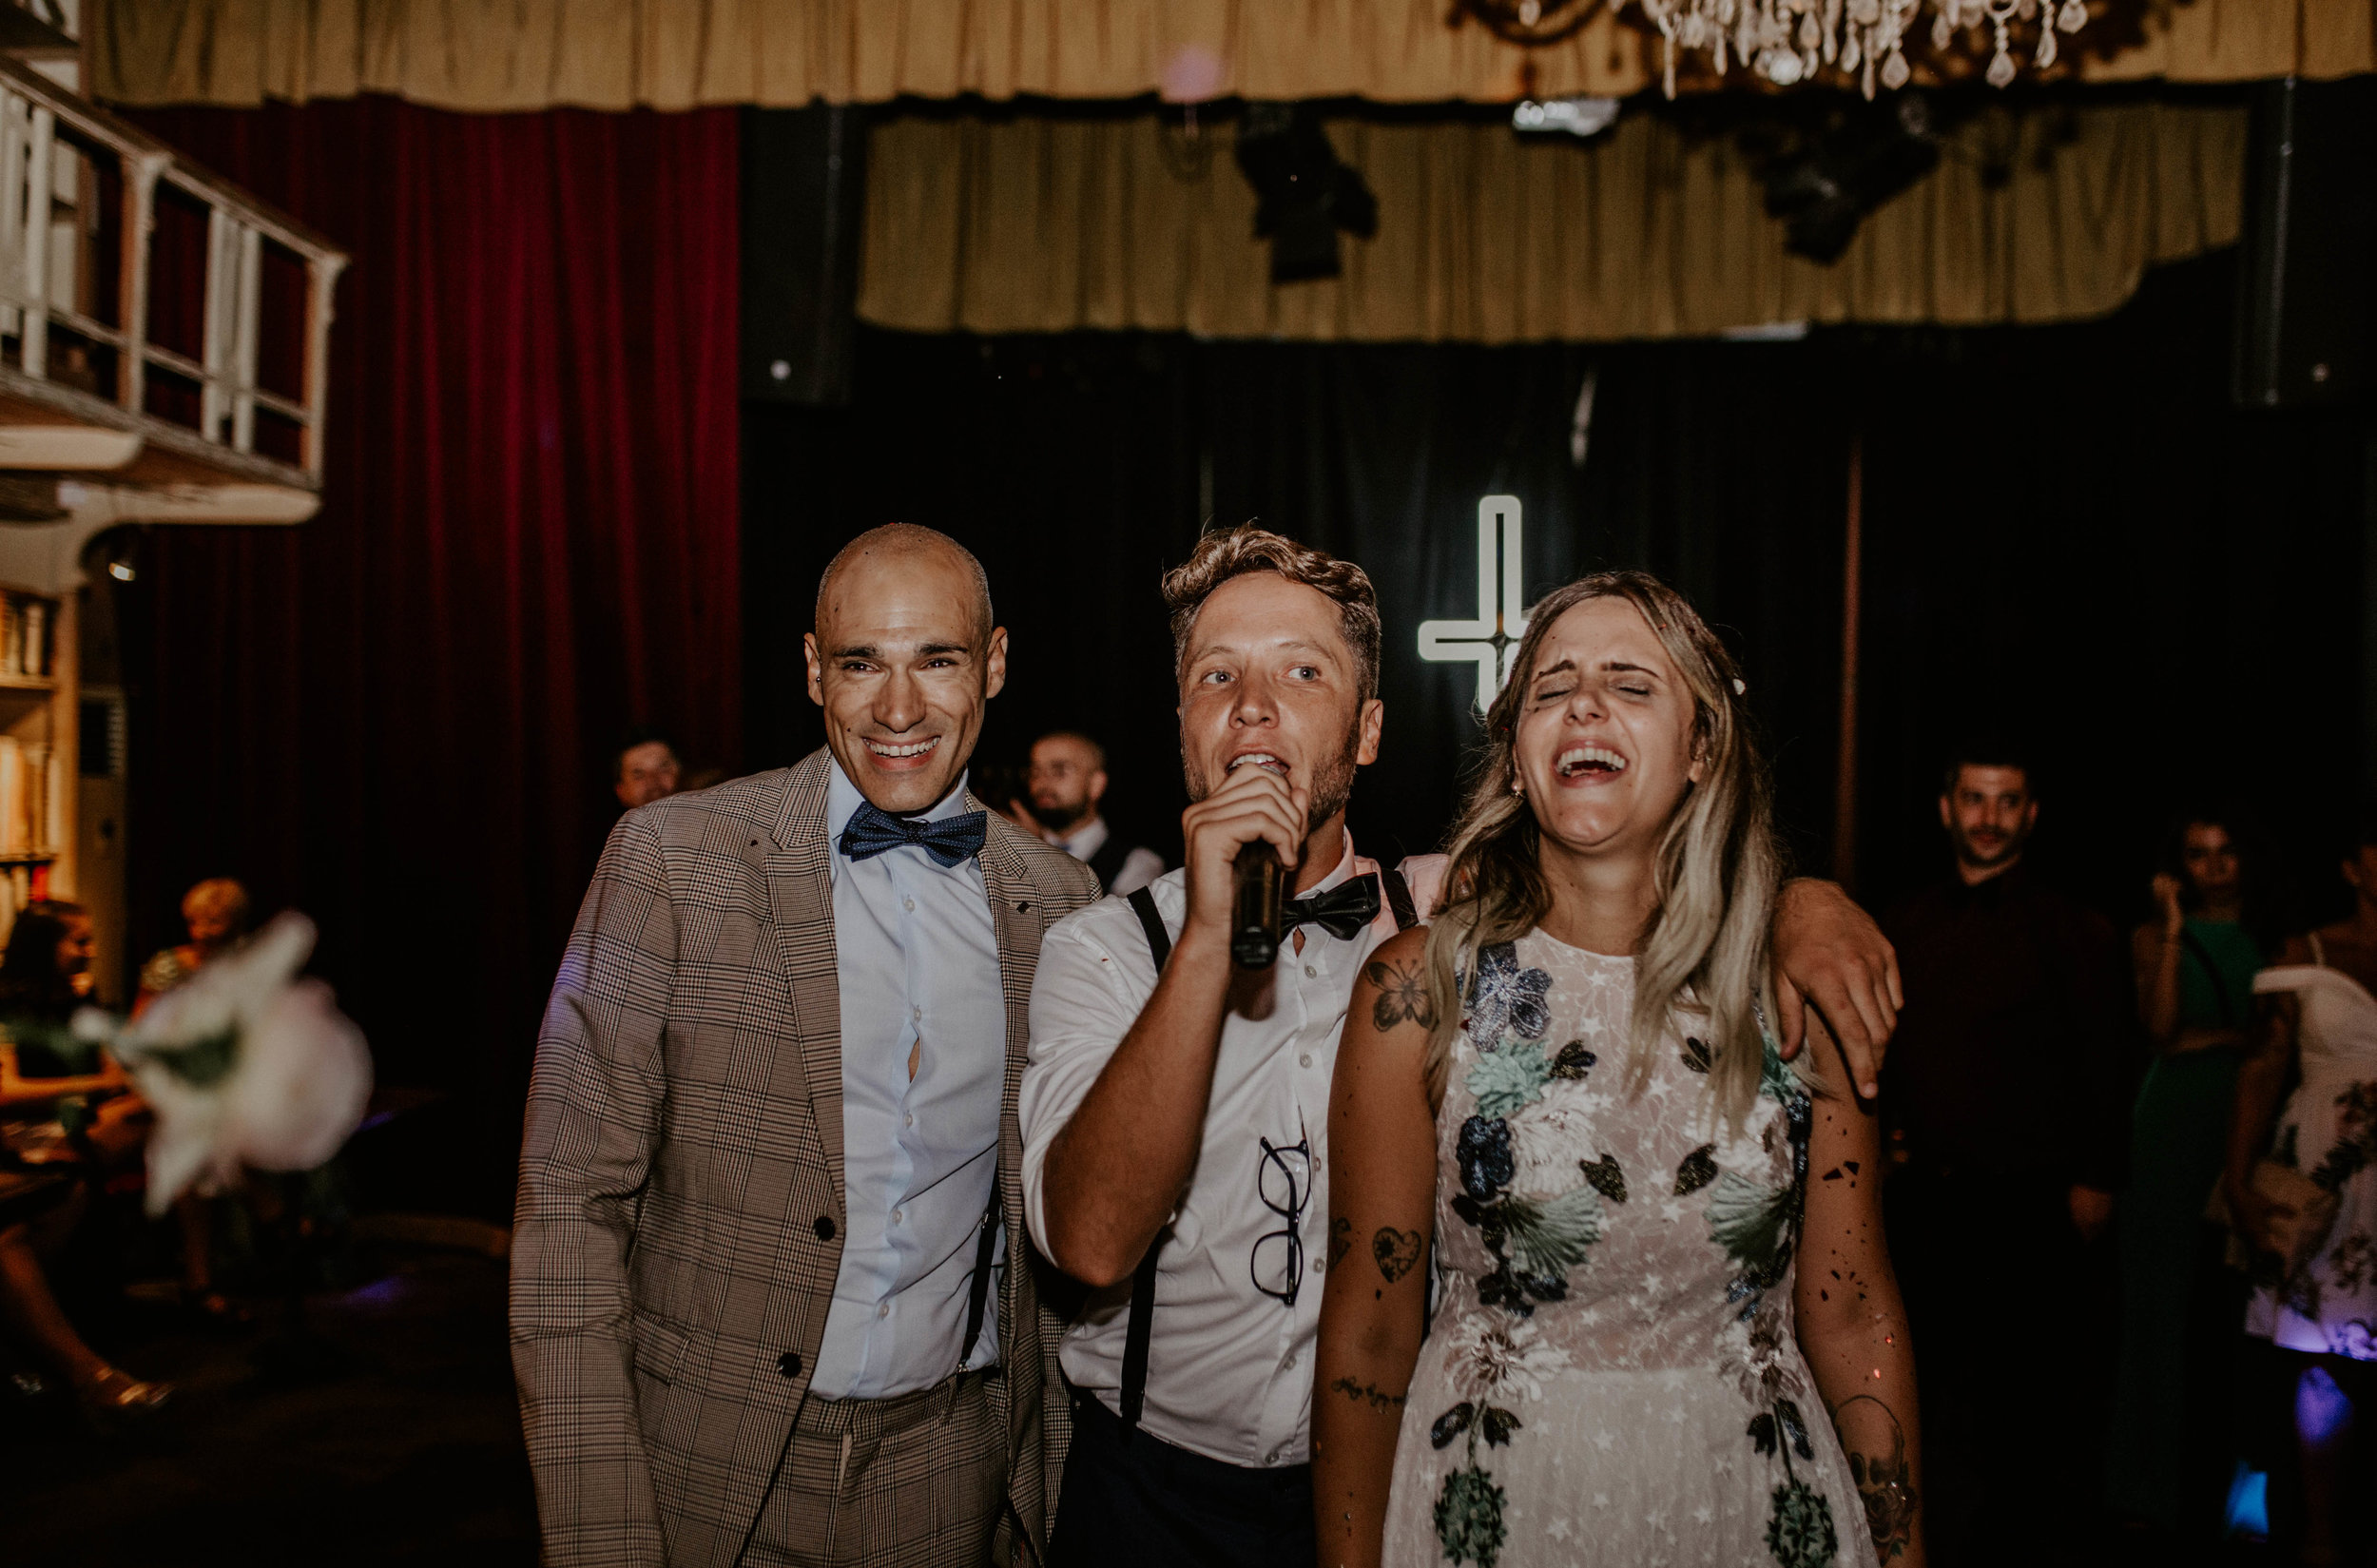 thenortherngirlphotography_bodasindustriales_bodasdiferentes_weddingphotographer_spanishphotographer_spanisgweddingphotographer_happyendings_mercantic_elsiglomercantic_antichrist_love_neon_weddingtattoo_CYNTHIAMANOLO-950.jpg